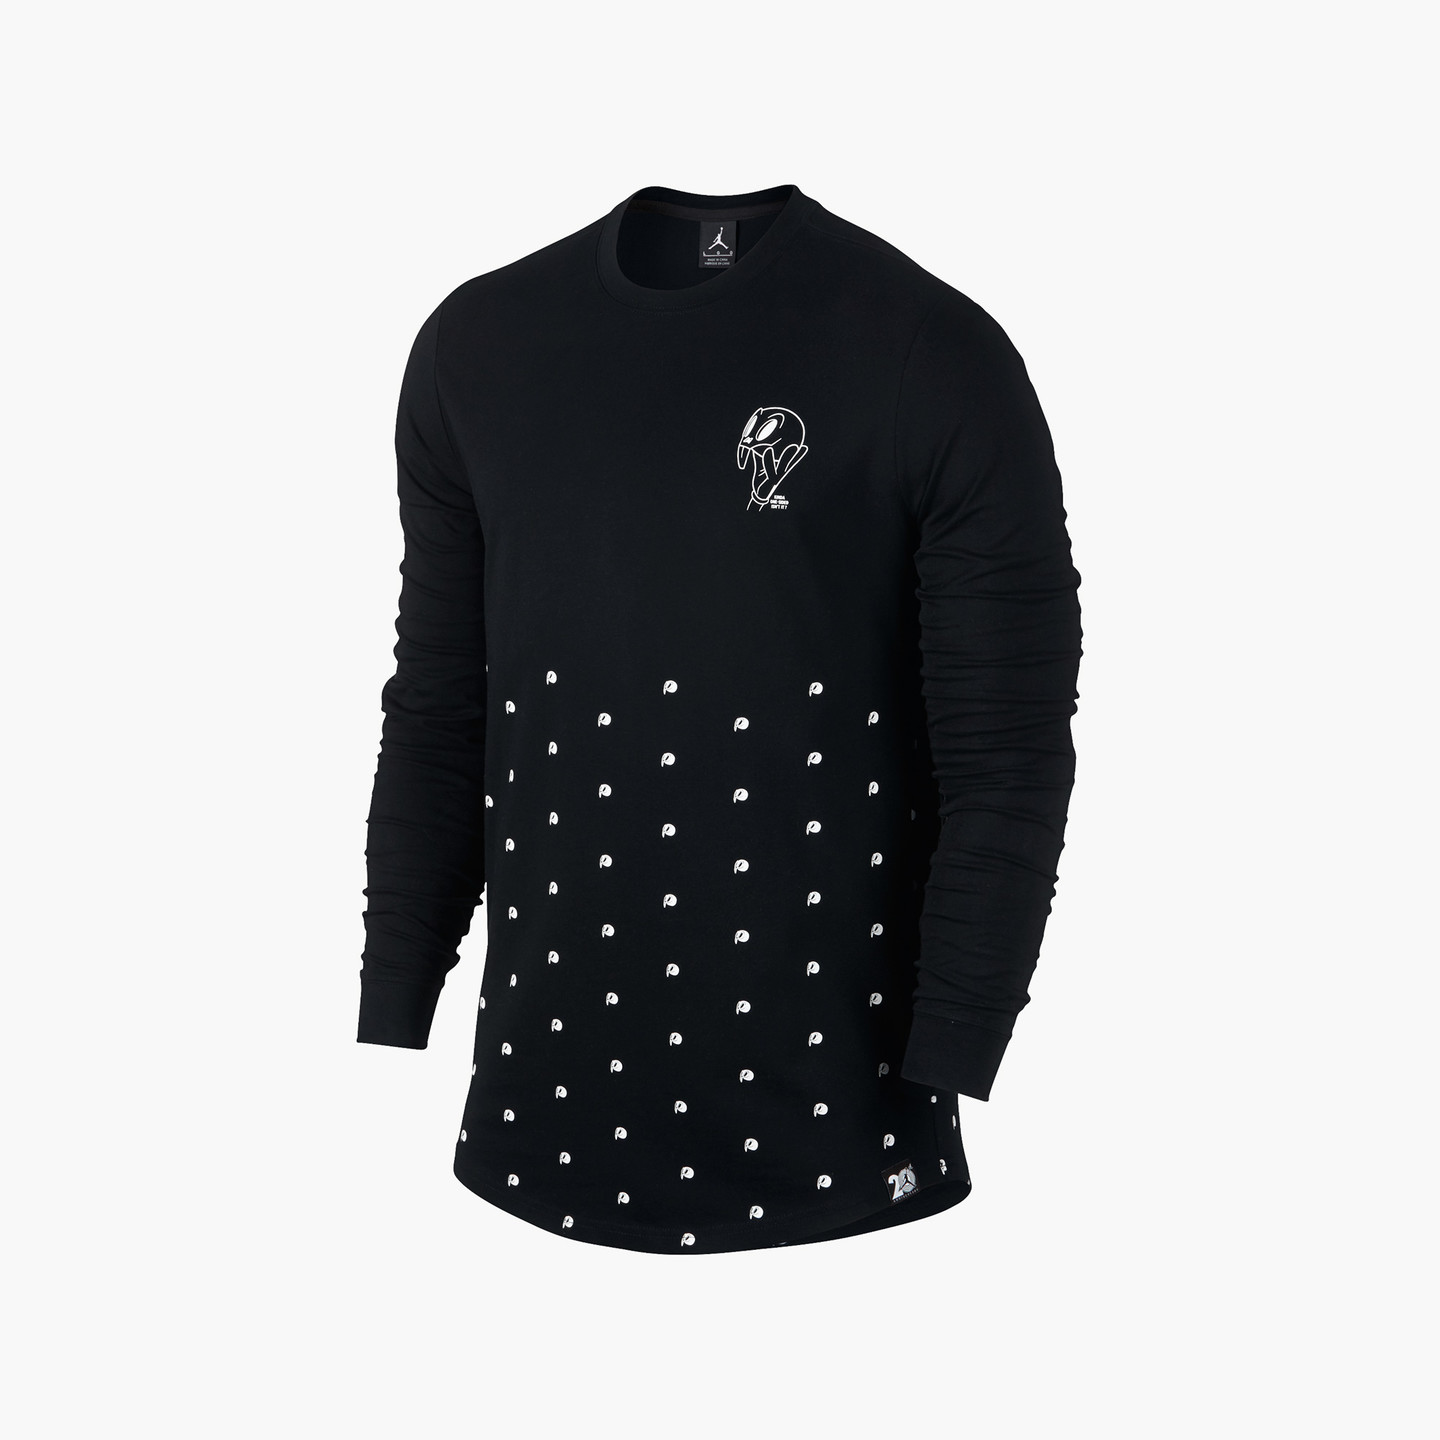 Jordan Air Jordan 11 Longsleeve Black / White 819121-010